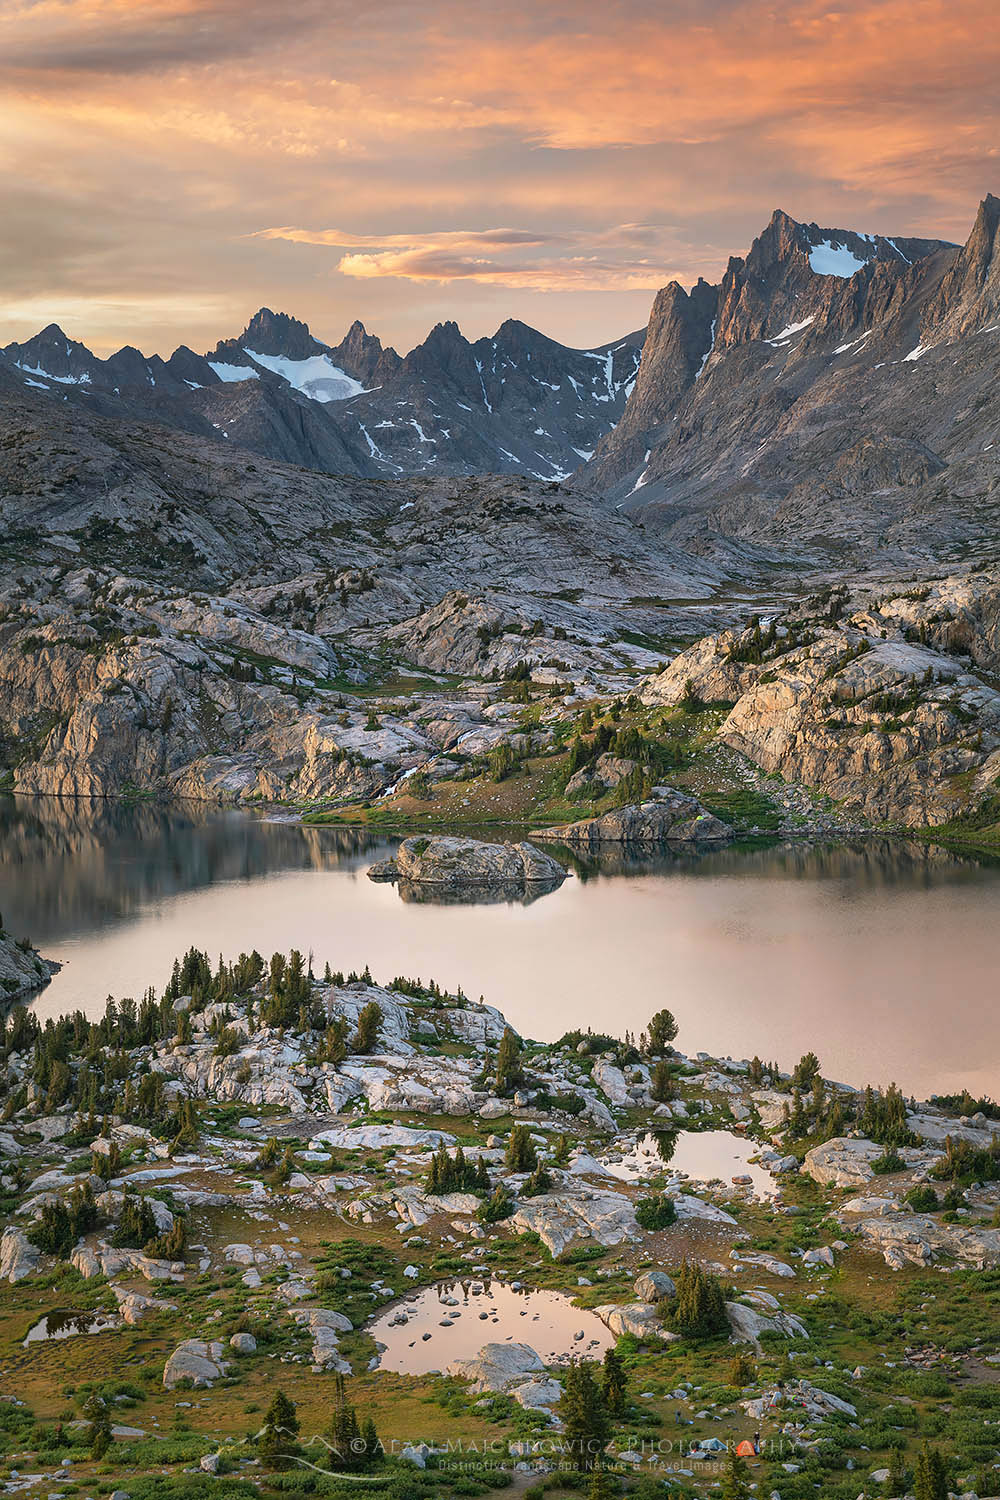 Island Lake Bridger Wilderness, Wind River Range Wyoming